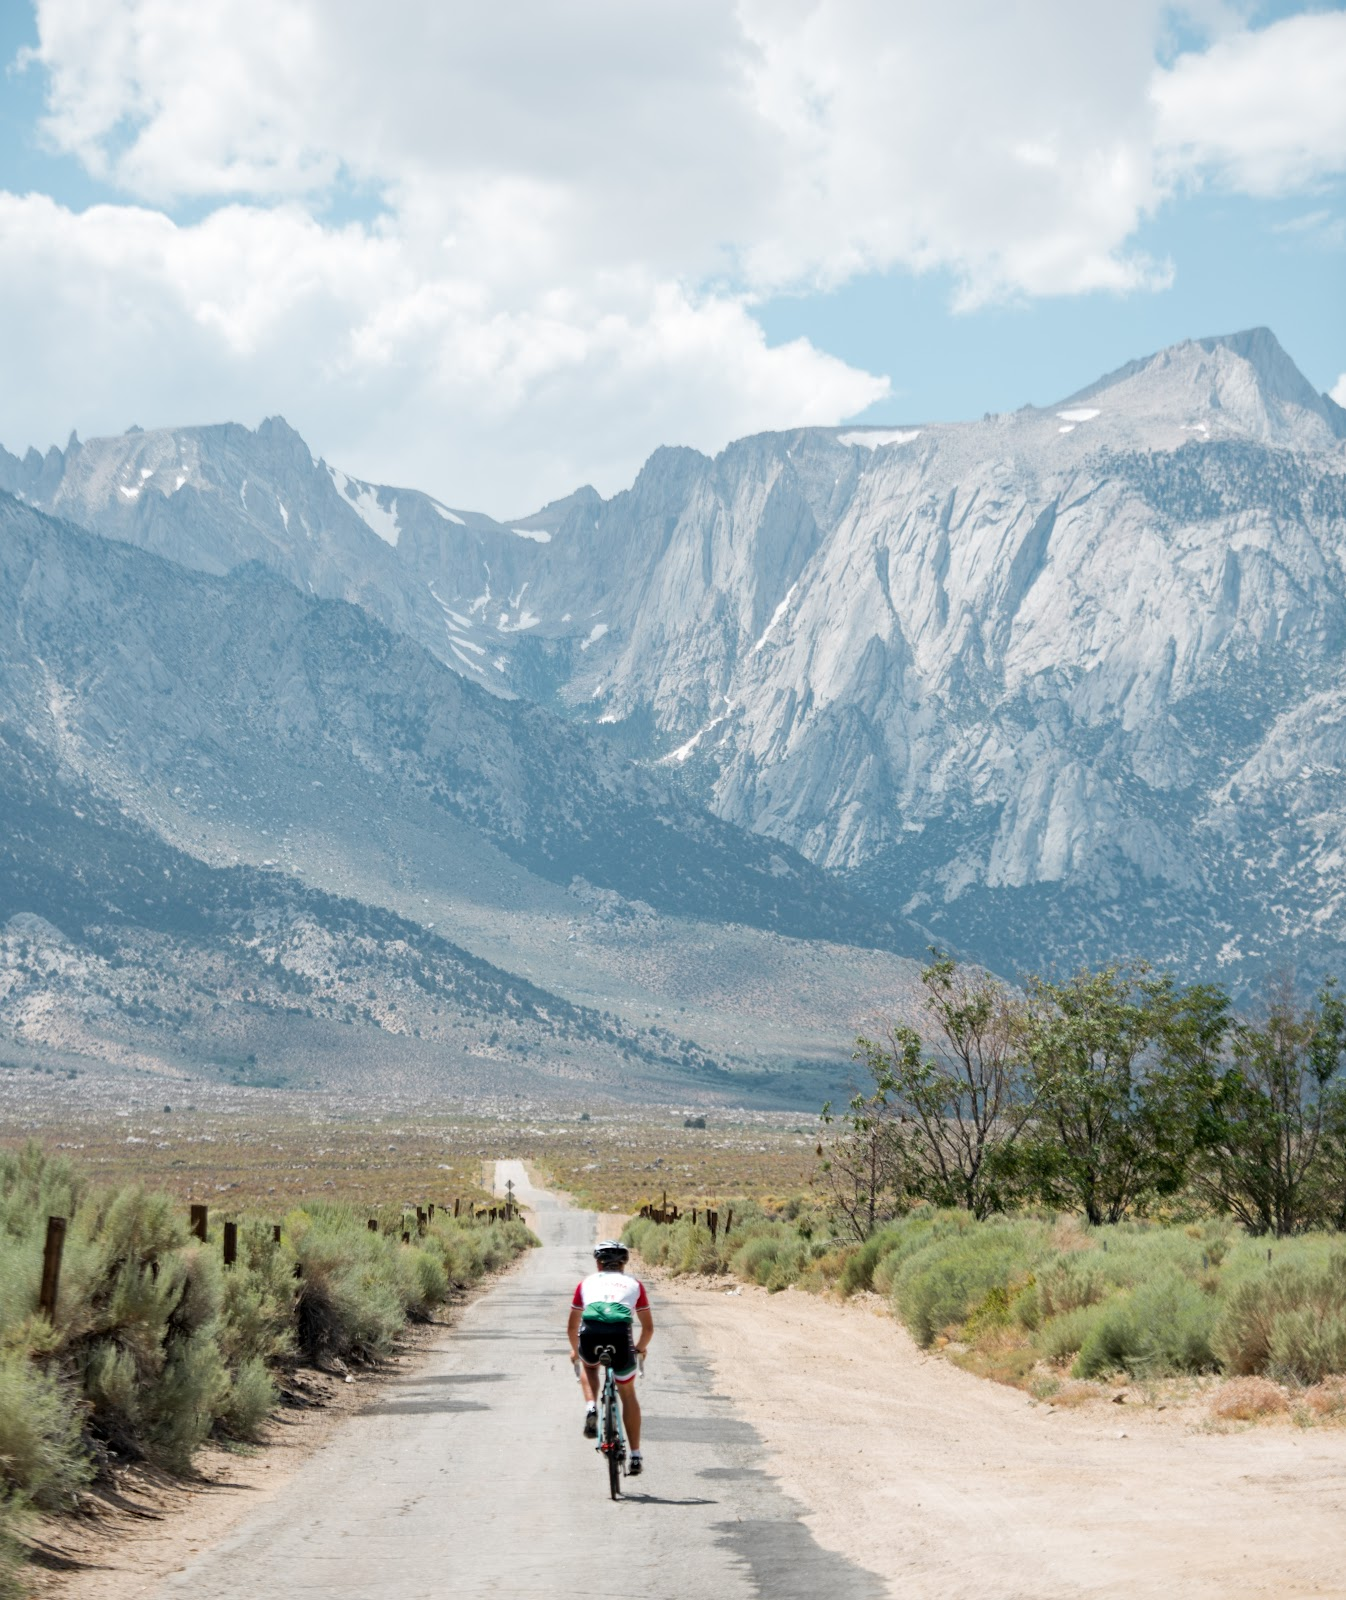 Cyclist riding bike up Lubken Canyon Road, Big Pine, Owens Valley